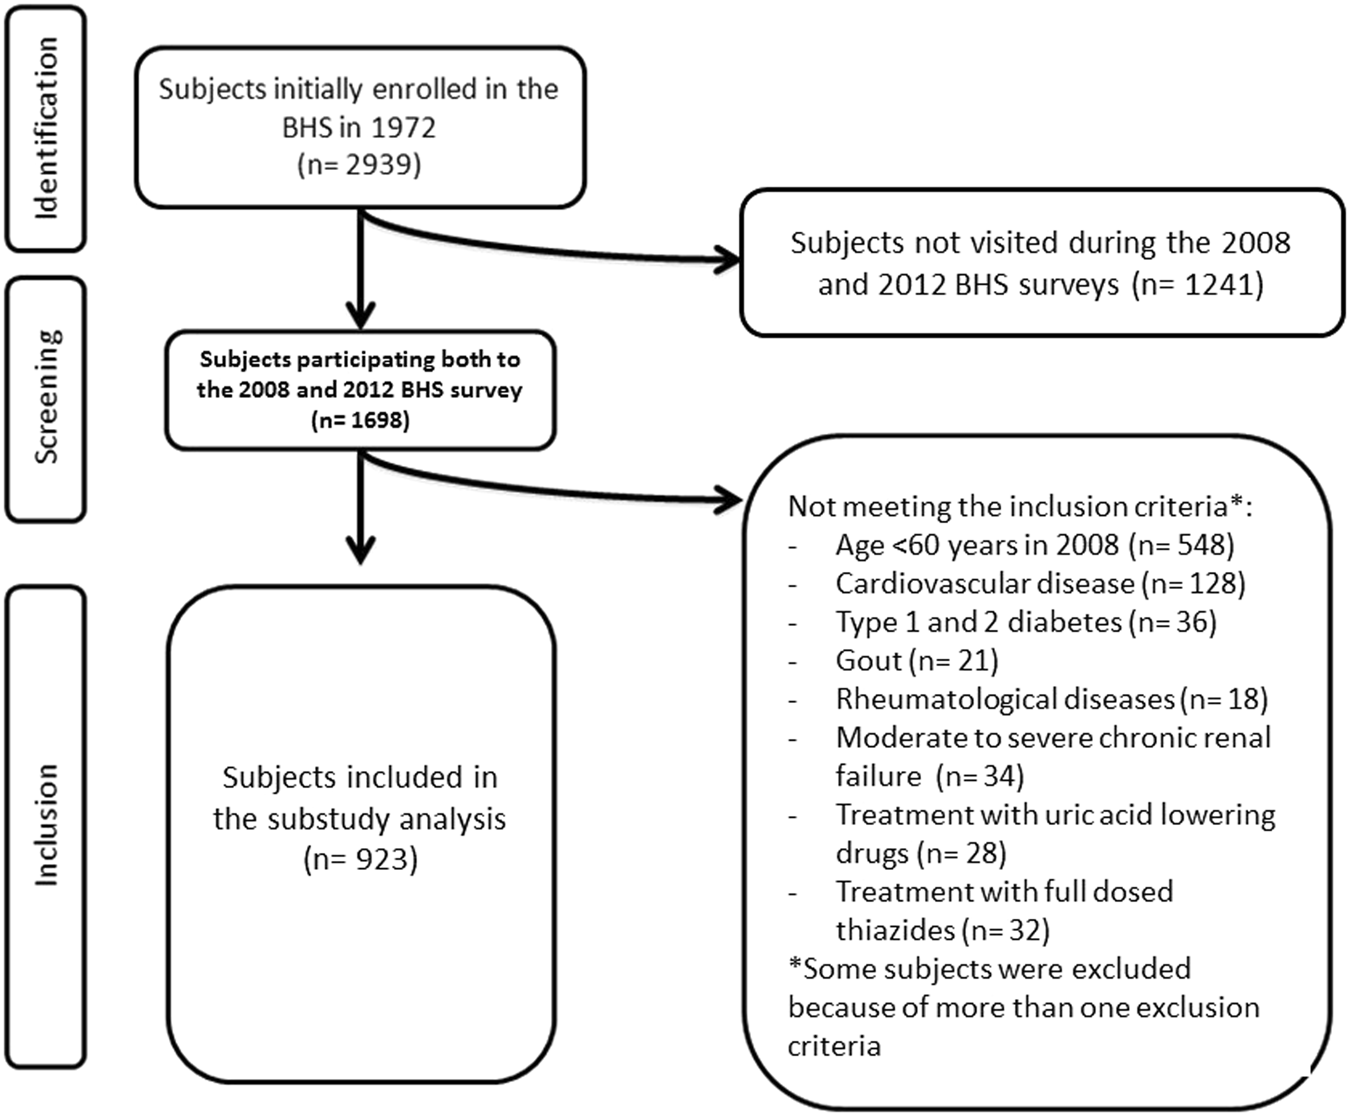 serum uric acid predicts incident metabolic syndrome in the elderly